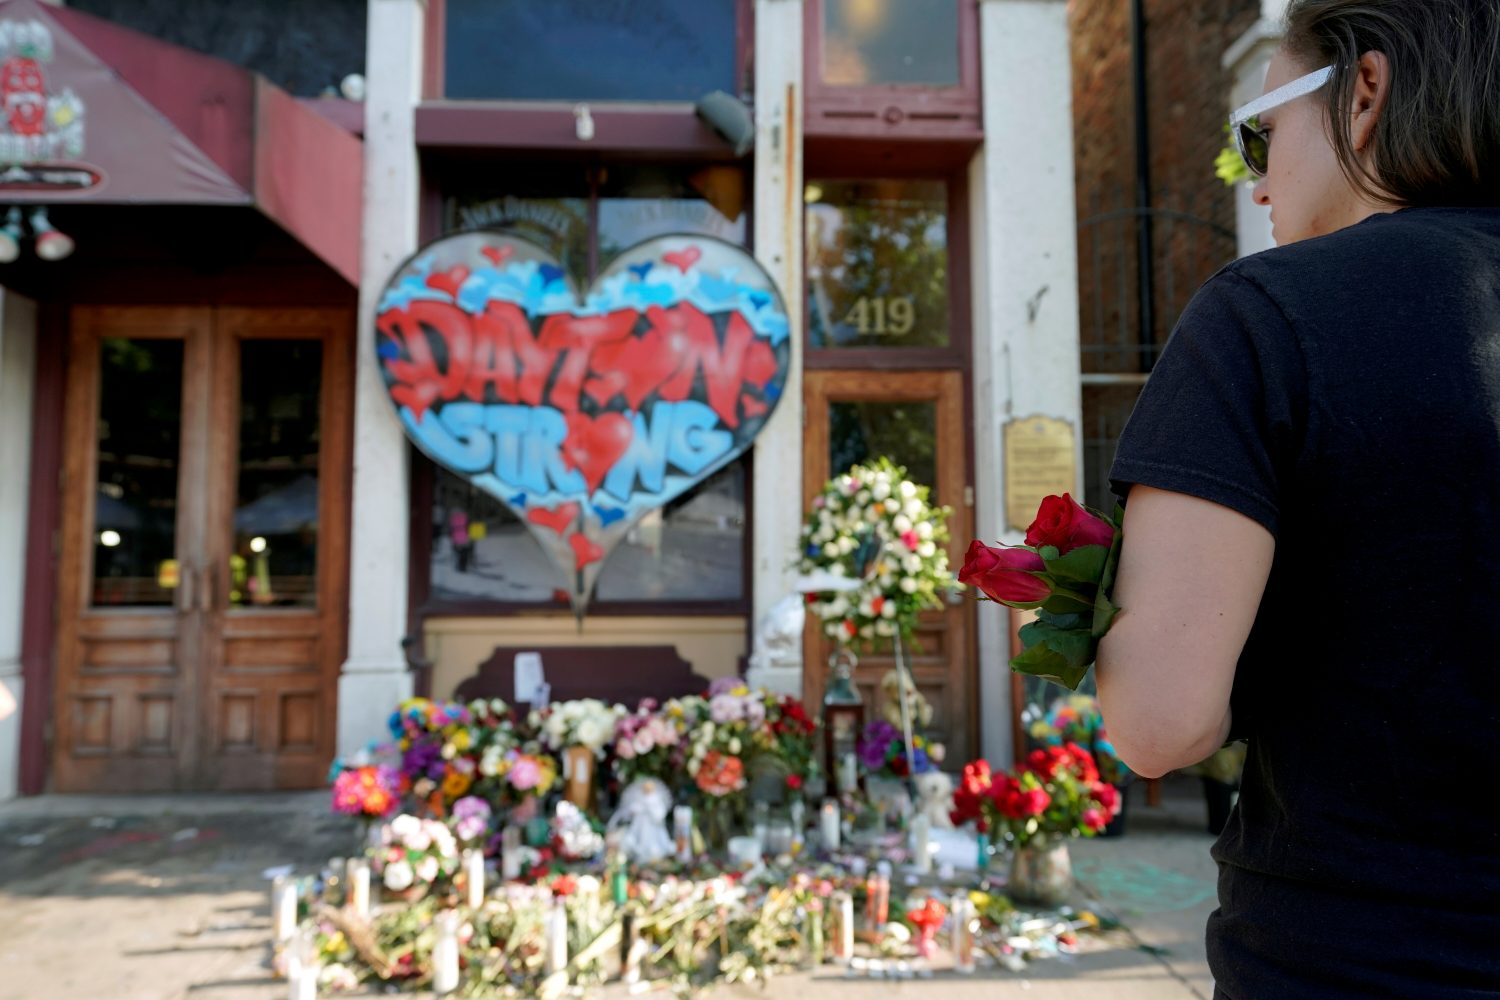 FILE PHOTO: A Oregon District resident stands at a memorial for those killed during Sunday morning's a mass shooting in Dayton, Ohio, U.S. August 7, 2019. REUTERS/Bryan Woolston/File Photo